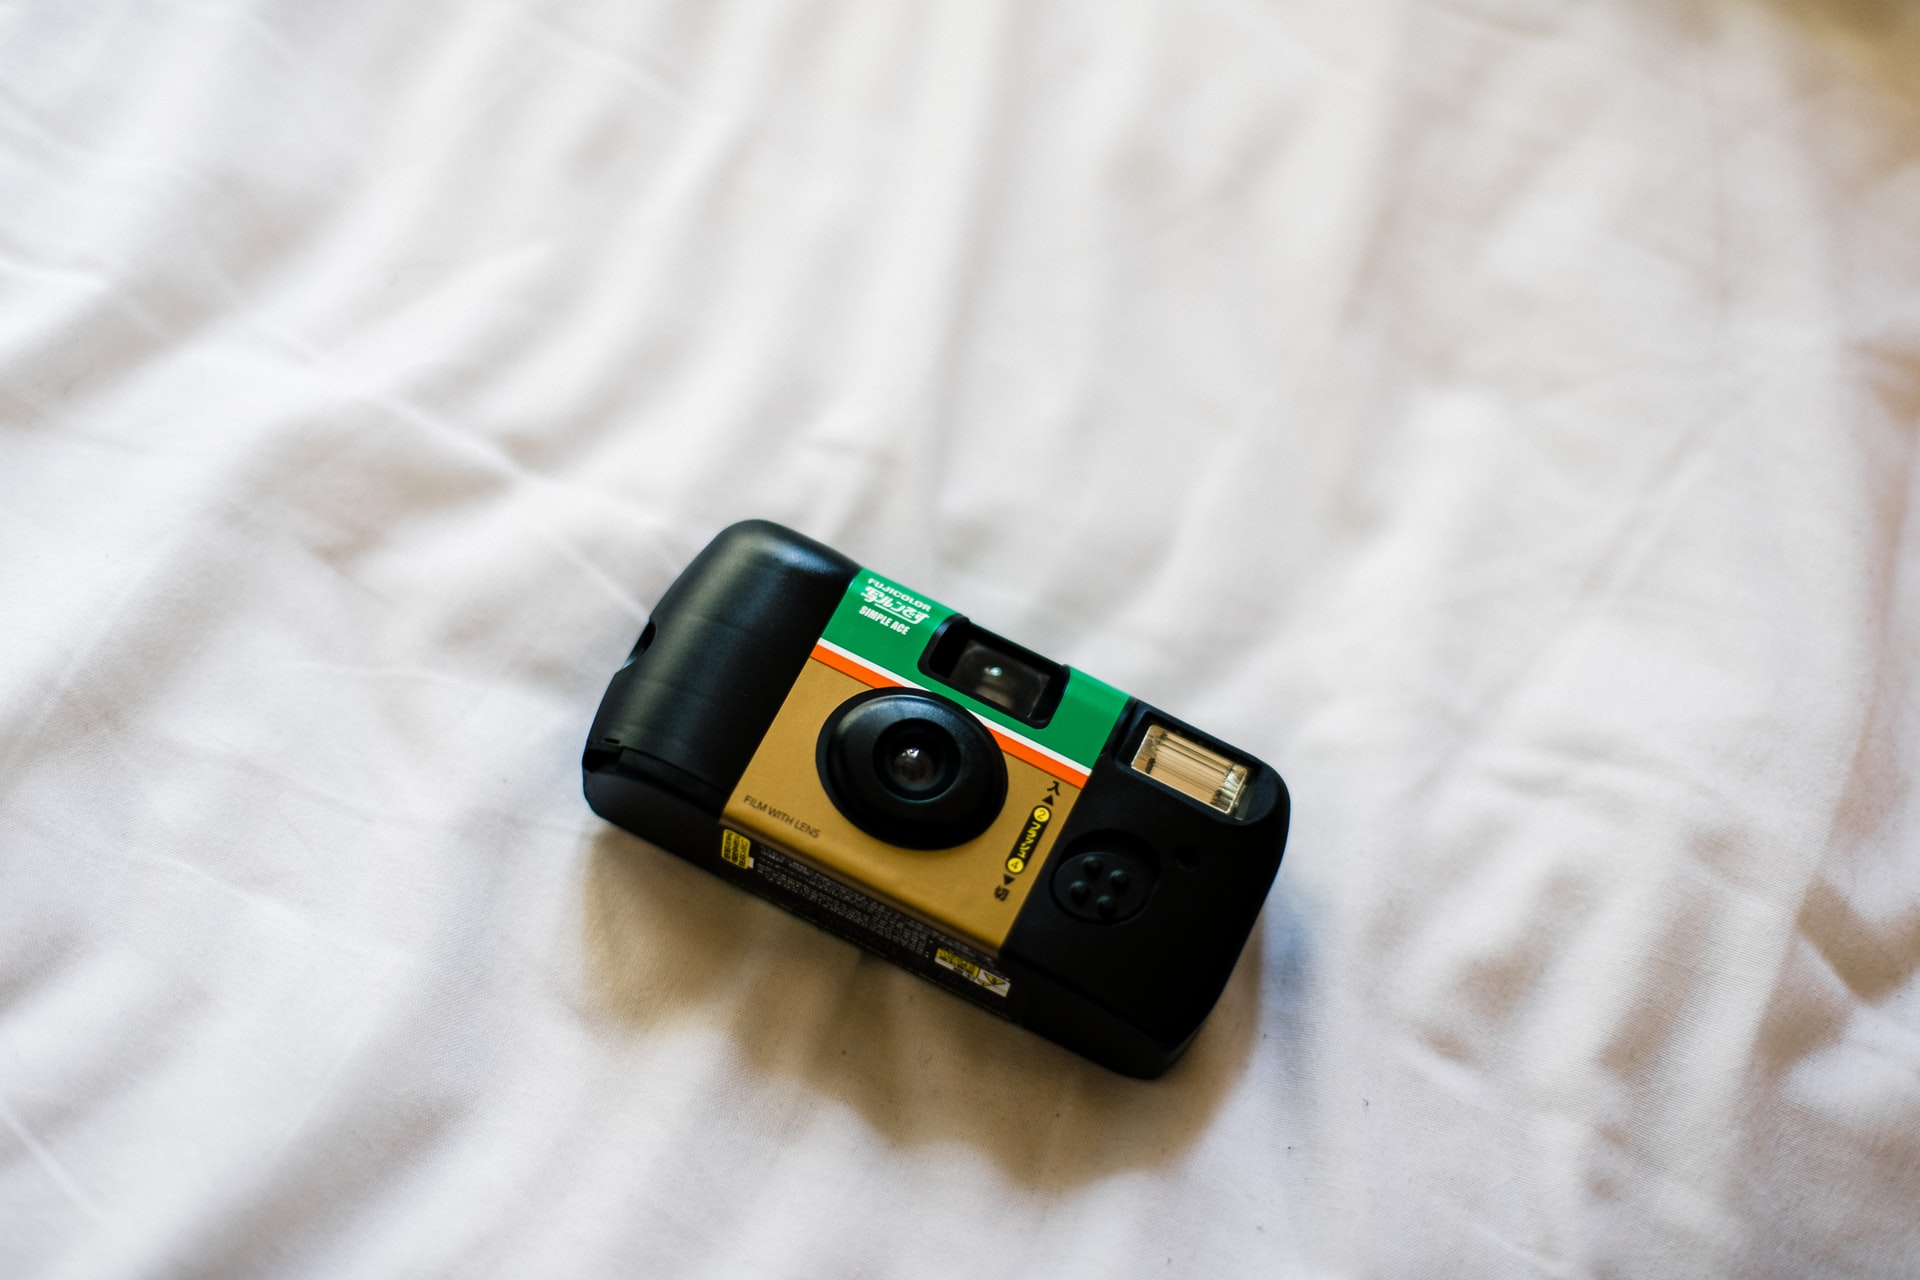 fujicolor-disposable-camera-on-white-bed-sheets